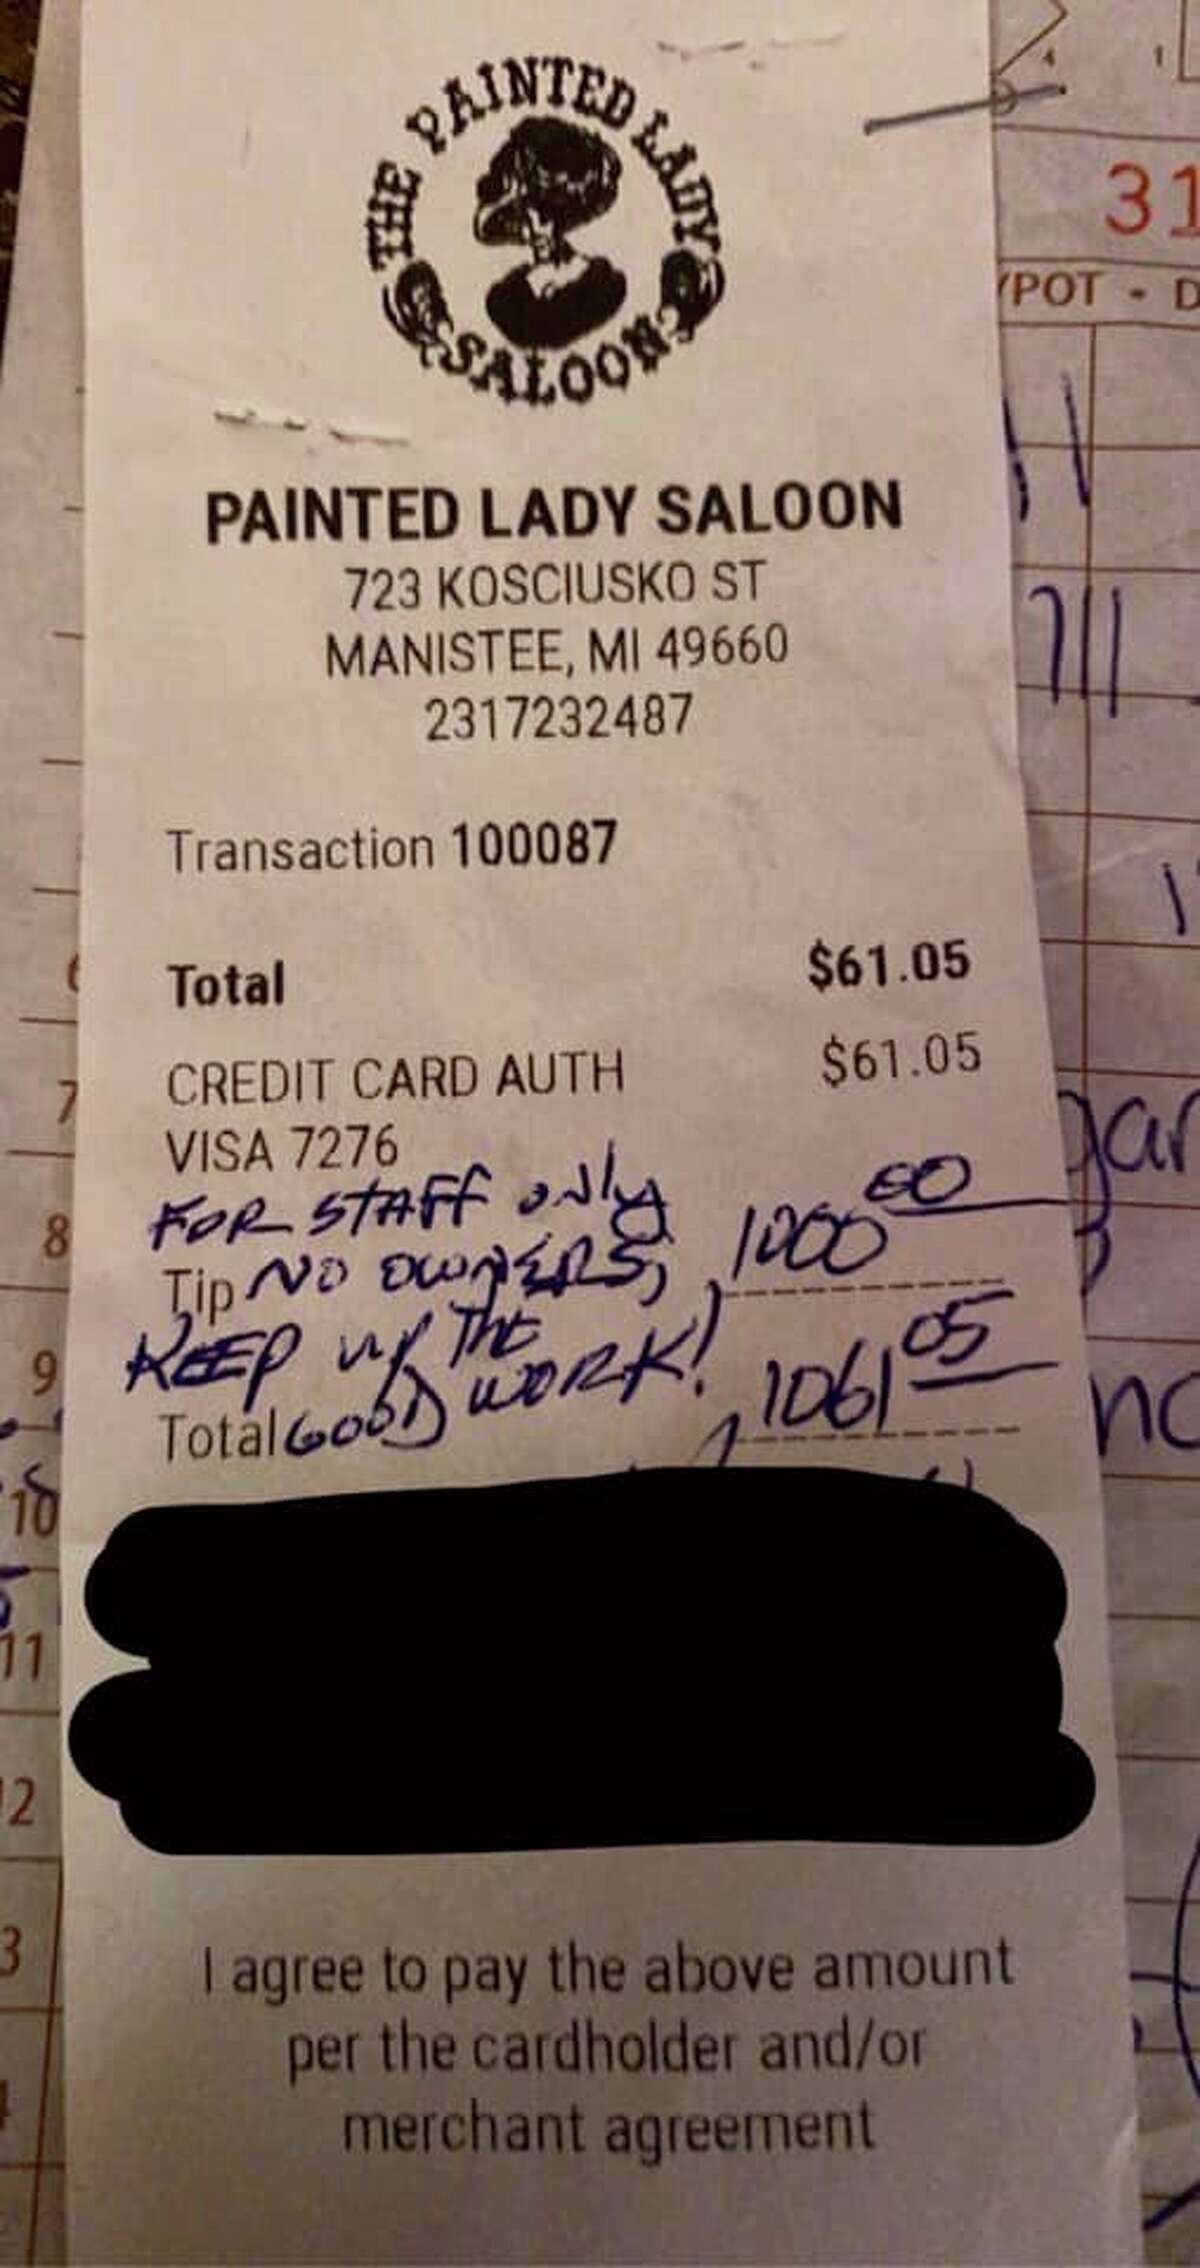 Staff at the Painted Lady Saloon in Manistee's Maxwelltown neighborhood were surprised this week by receivinga $1,000 tip. (Courtesy Photo)